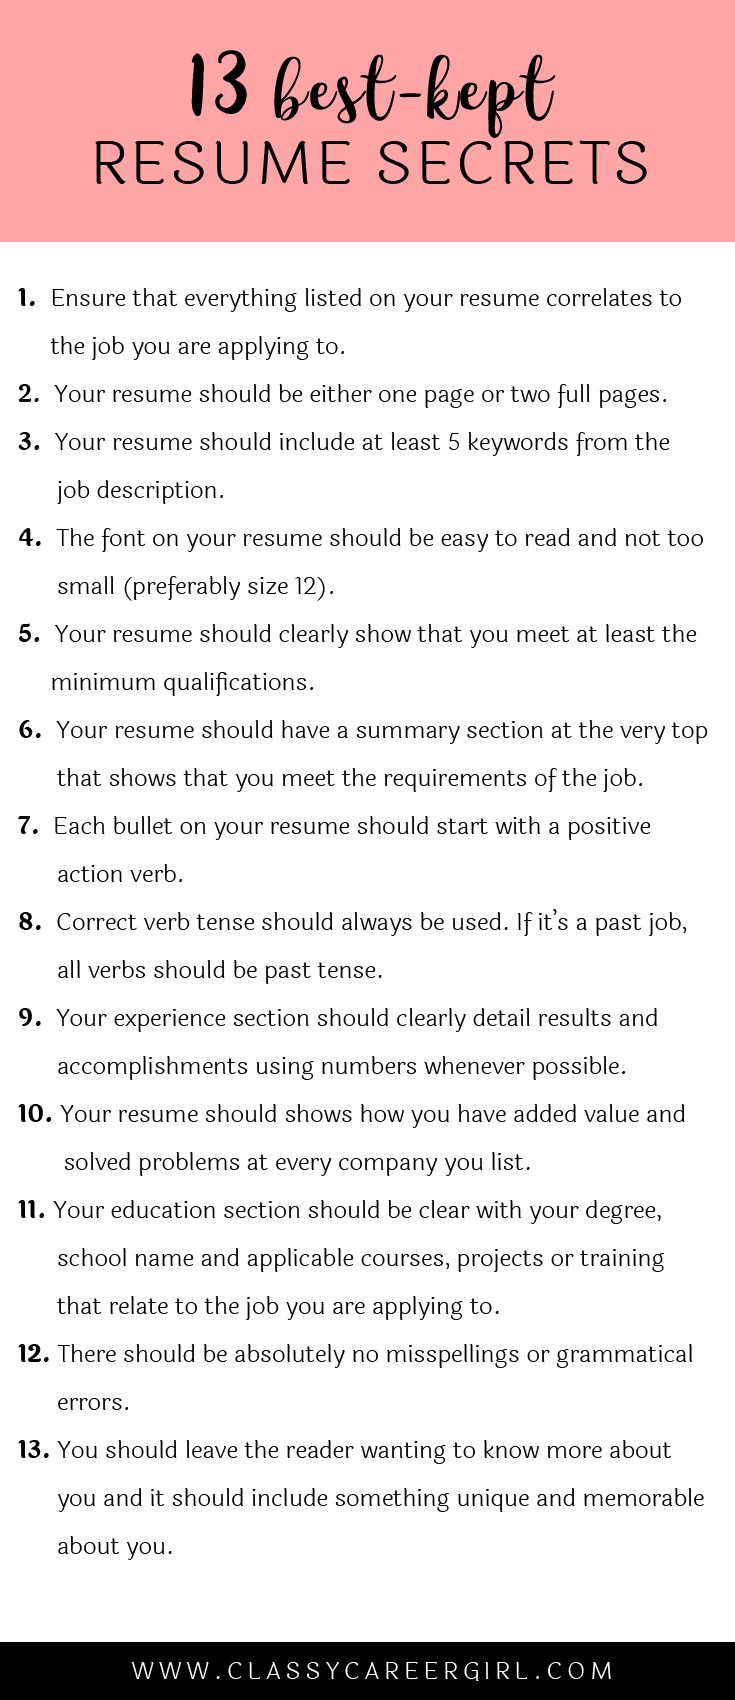 Opposenewapstandardsus  Surprising  Ideas About Resume On Pinterest  Cv Format Resume Cv And  With Fascinating Some Hiring Managers Will Toss Your Resume Out If You Dont Know These  With Comely Sample Retail Manager Resume Also Caregiving Resume In Addition Email For Resume And Foreman Resume As Well As Resume For Sales Rep Additionally Quality Resume From Pinterestcom With Opposenewapstandardsus  Fascinating  Ideas About Resume On Pinterest  Cv Format Resume Cv And  With Comely Some Hiring Managers Will Toss Your Resume Out If You Dont Know These  And Surprising Sample Retail Manager Resume Also Caregiving Resume In Addition Email For Resume From Pinterestcom